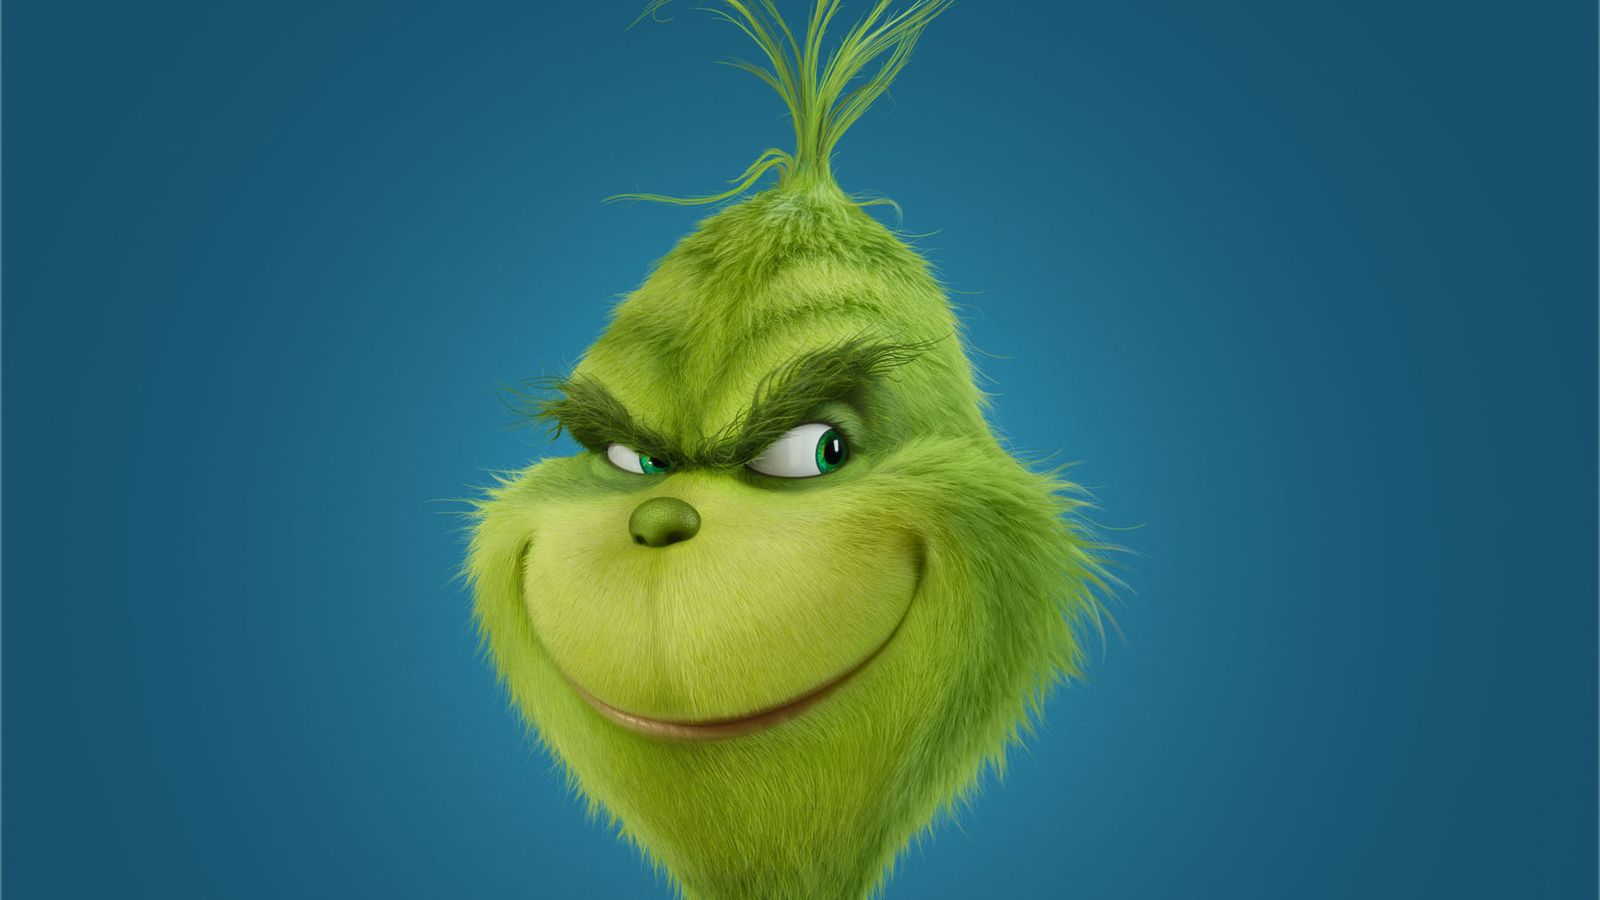 It's just a photo of Légend Images of the Grinch